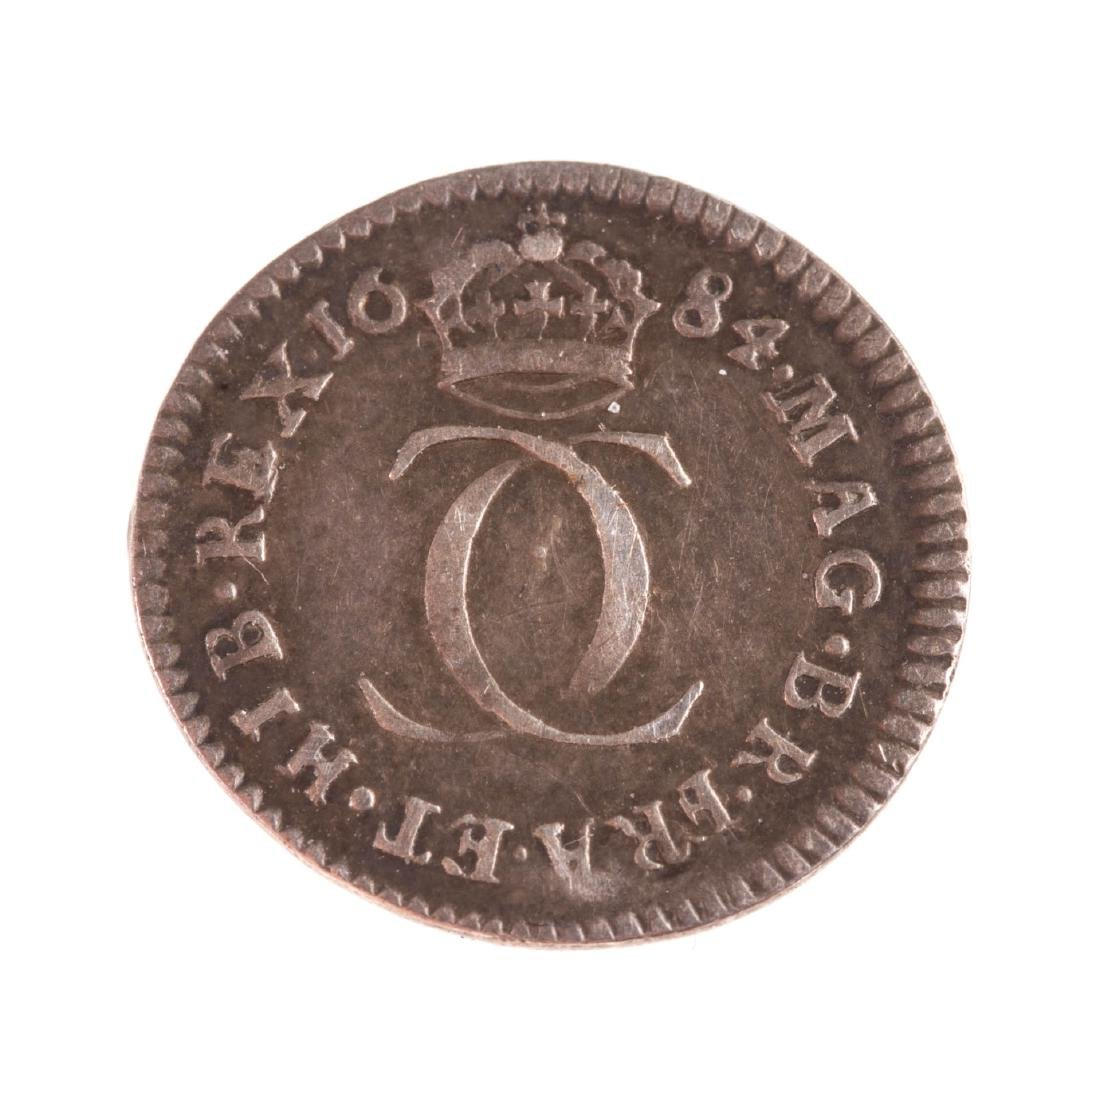 [World] 1684 Charles II Silver Maundy 2 Pence XF - 2